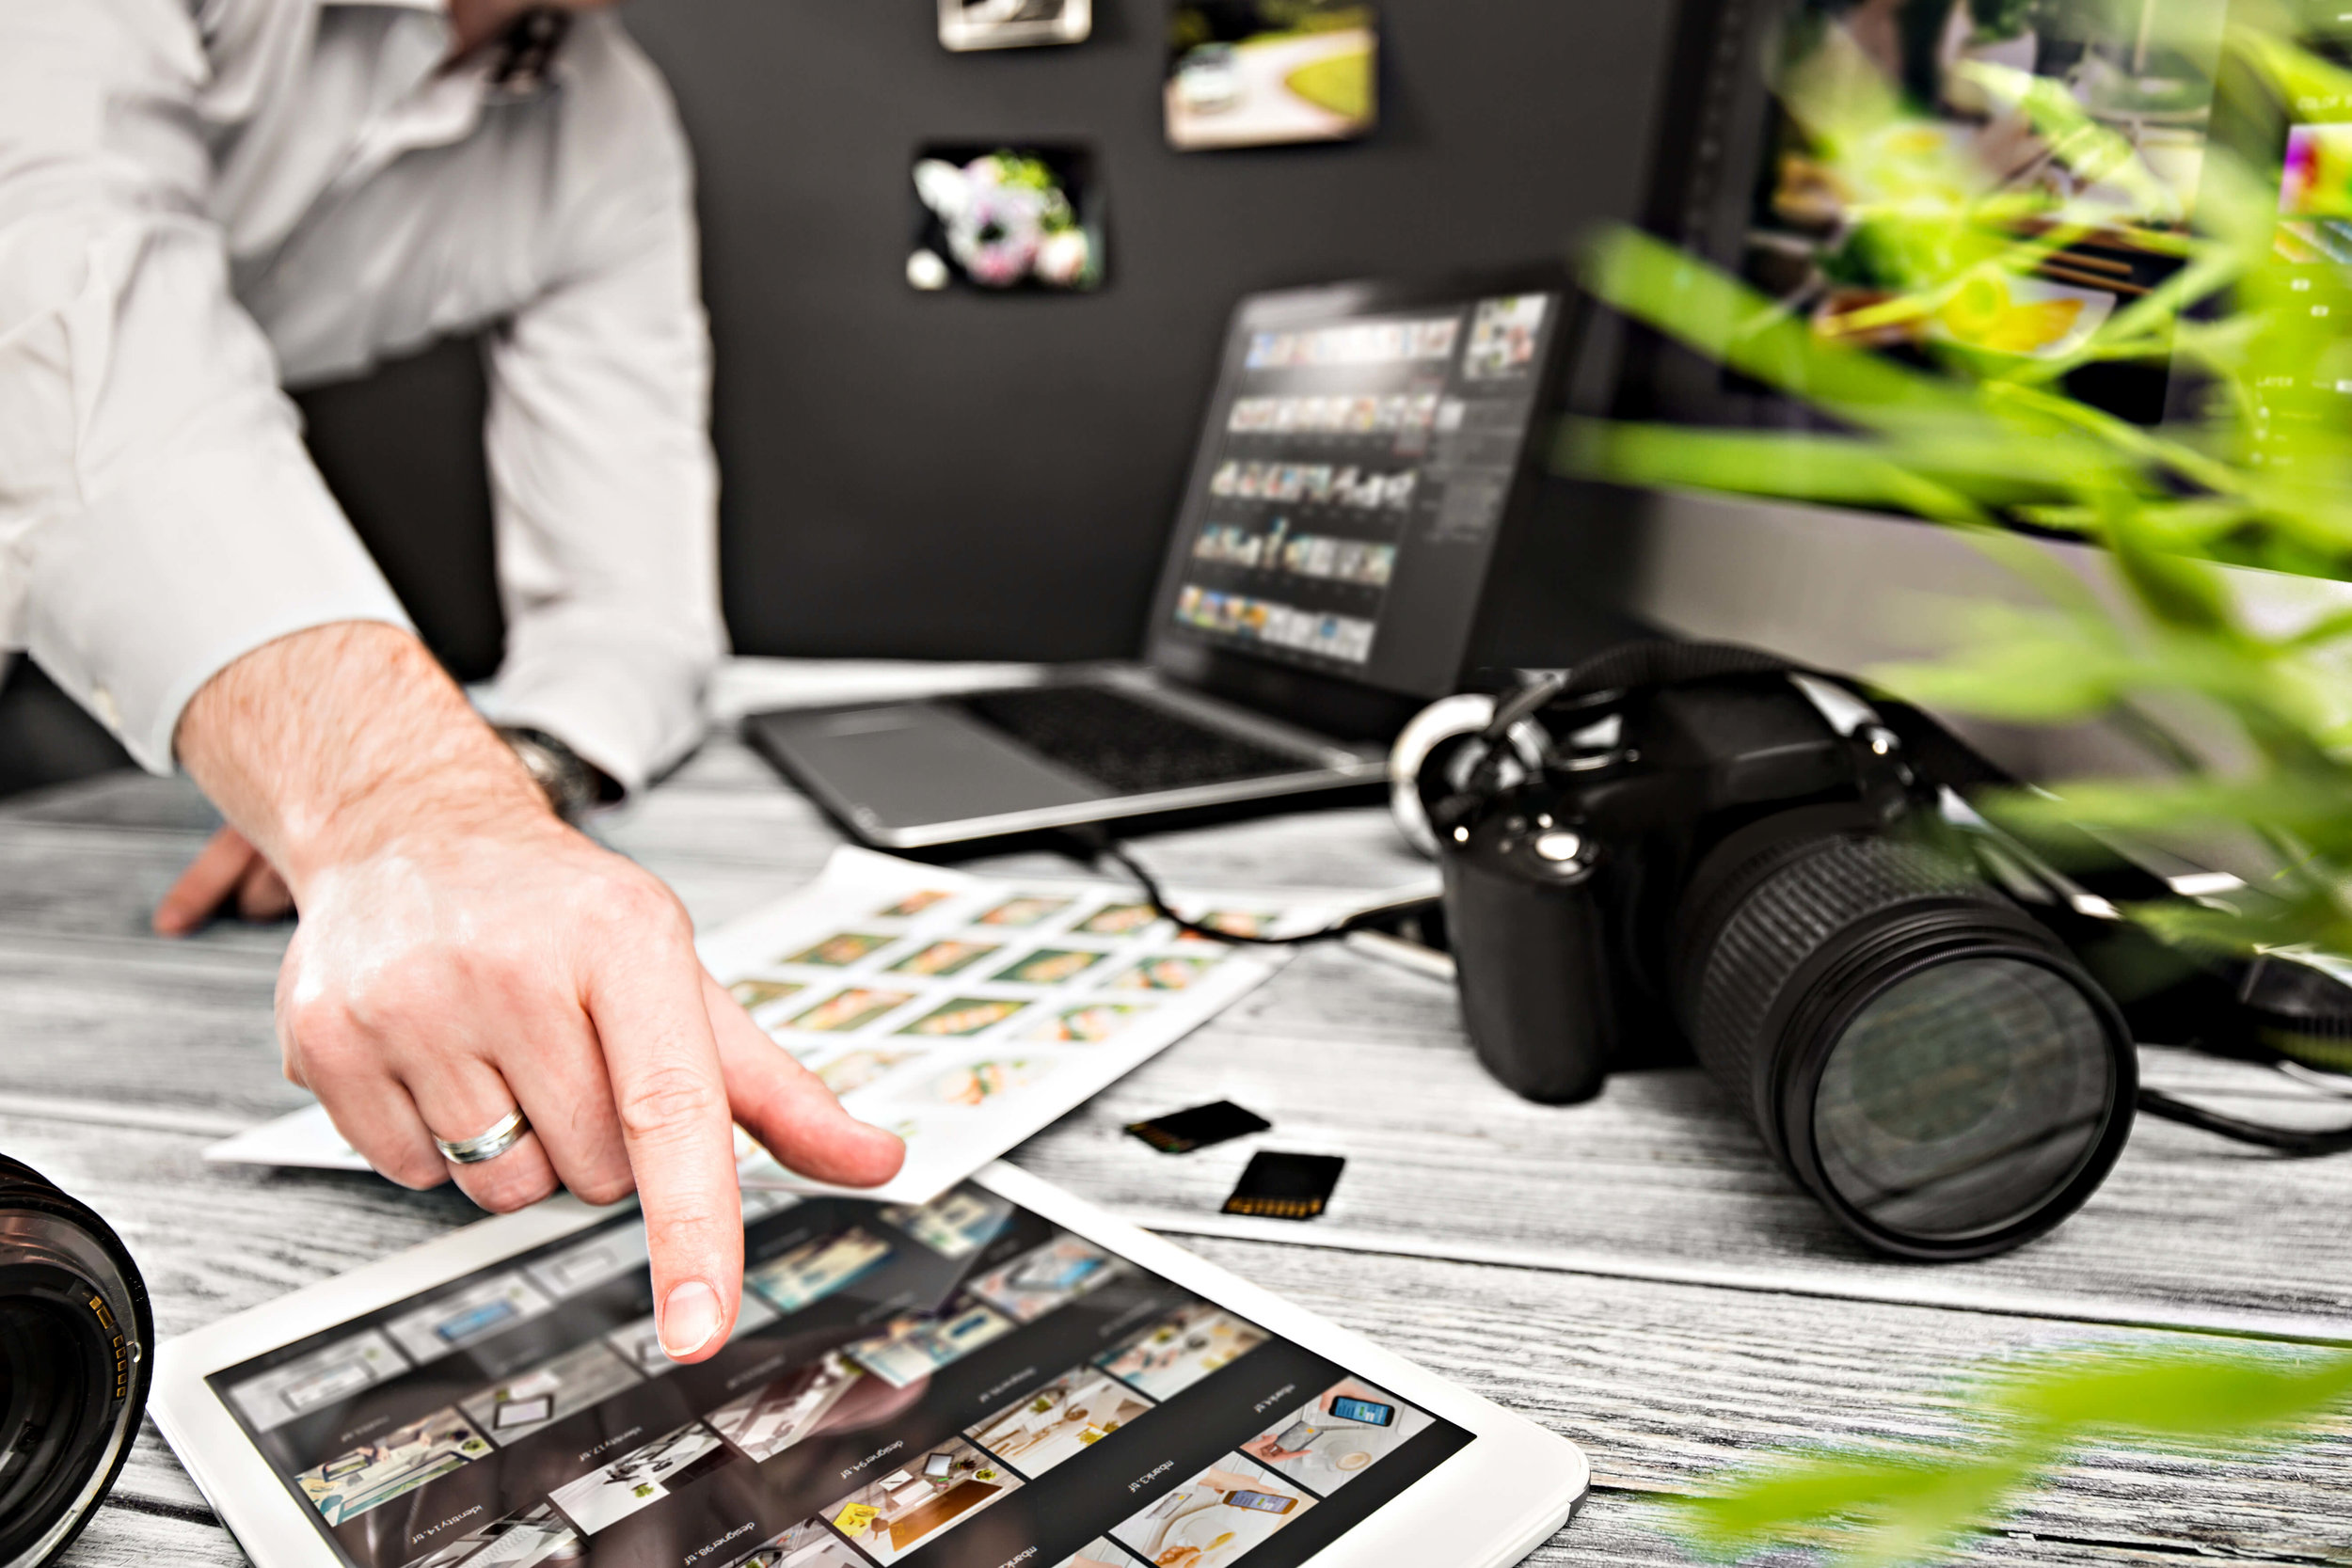 COMMERCIAL PHOTOGRAPHY - Eye-catching, professional imagery is important in ensuring a cohesive